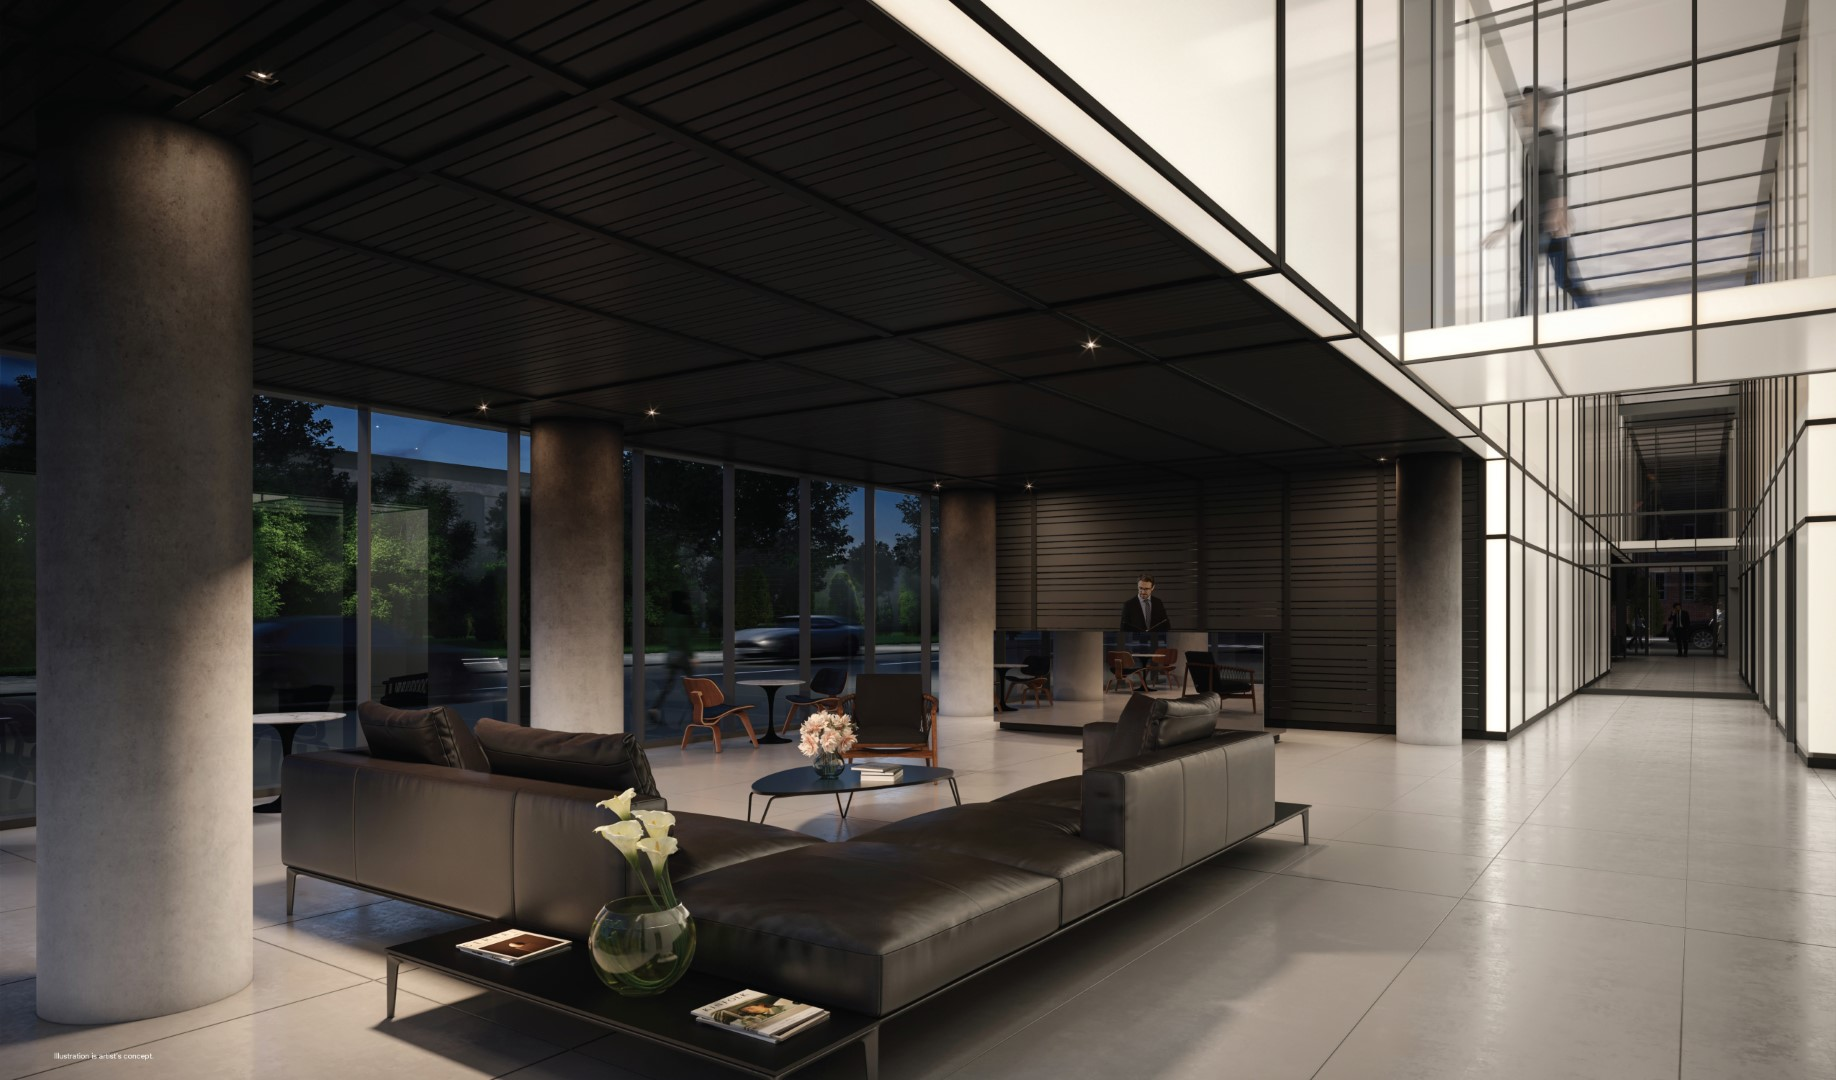 Rendering of 28 Eastern Condos interior lobby at night.